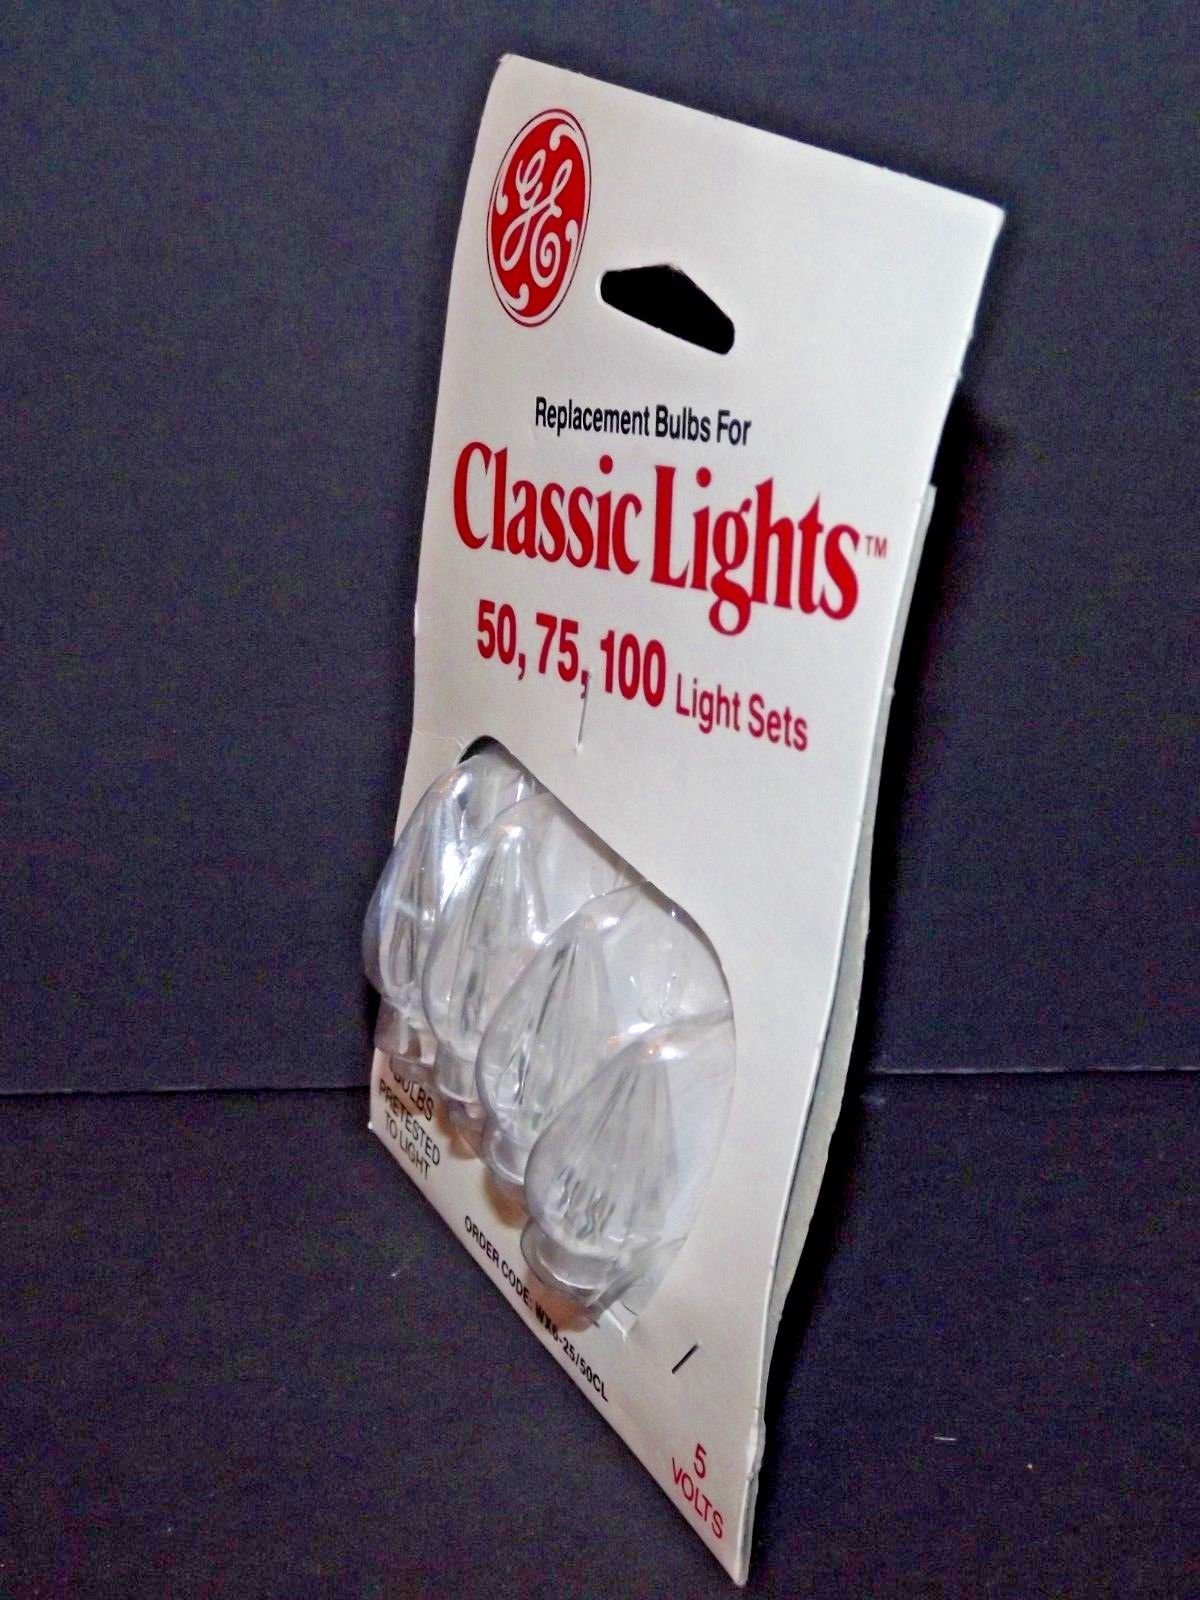 8 Packs of 4 GE Classic Lights Replacement Bulbs for 50, 75, 100 Light Sets (K) image 3